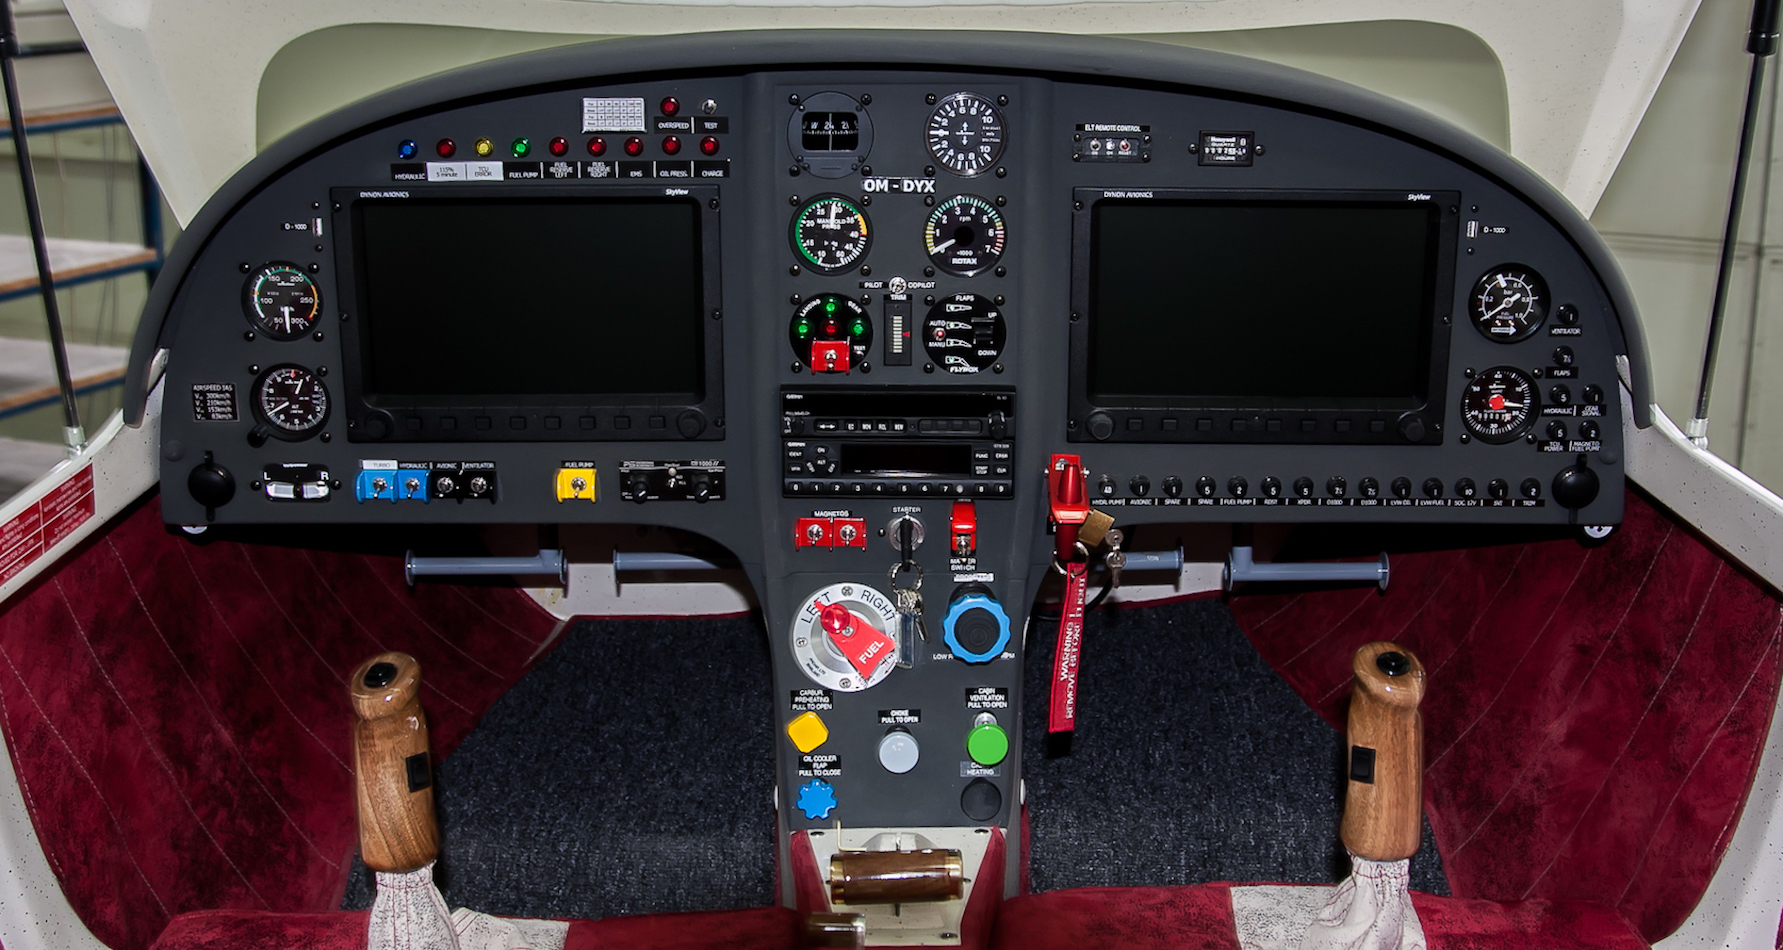 Advantic WT10 Cockpit